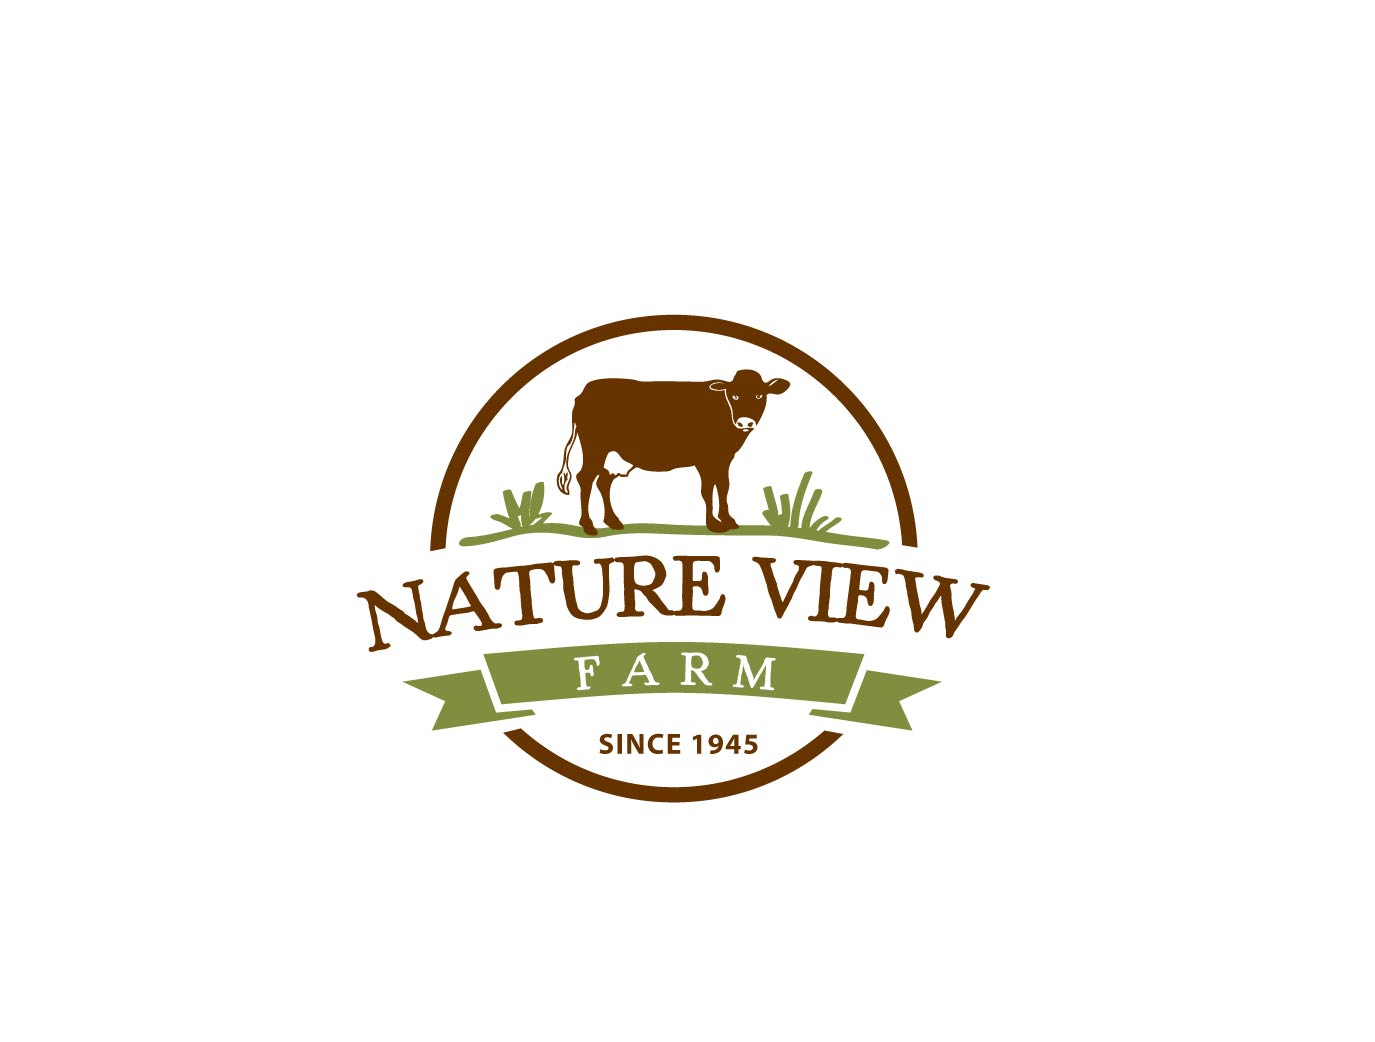 Precision Farming Reducing Farm Water likewise Vee Industrie besides How To Invite Others To Join Church Function additionally Contest additionally Clanwood Organic Farm. on cattle farm logo ideas